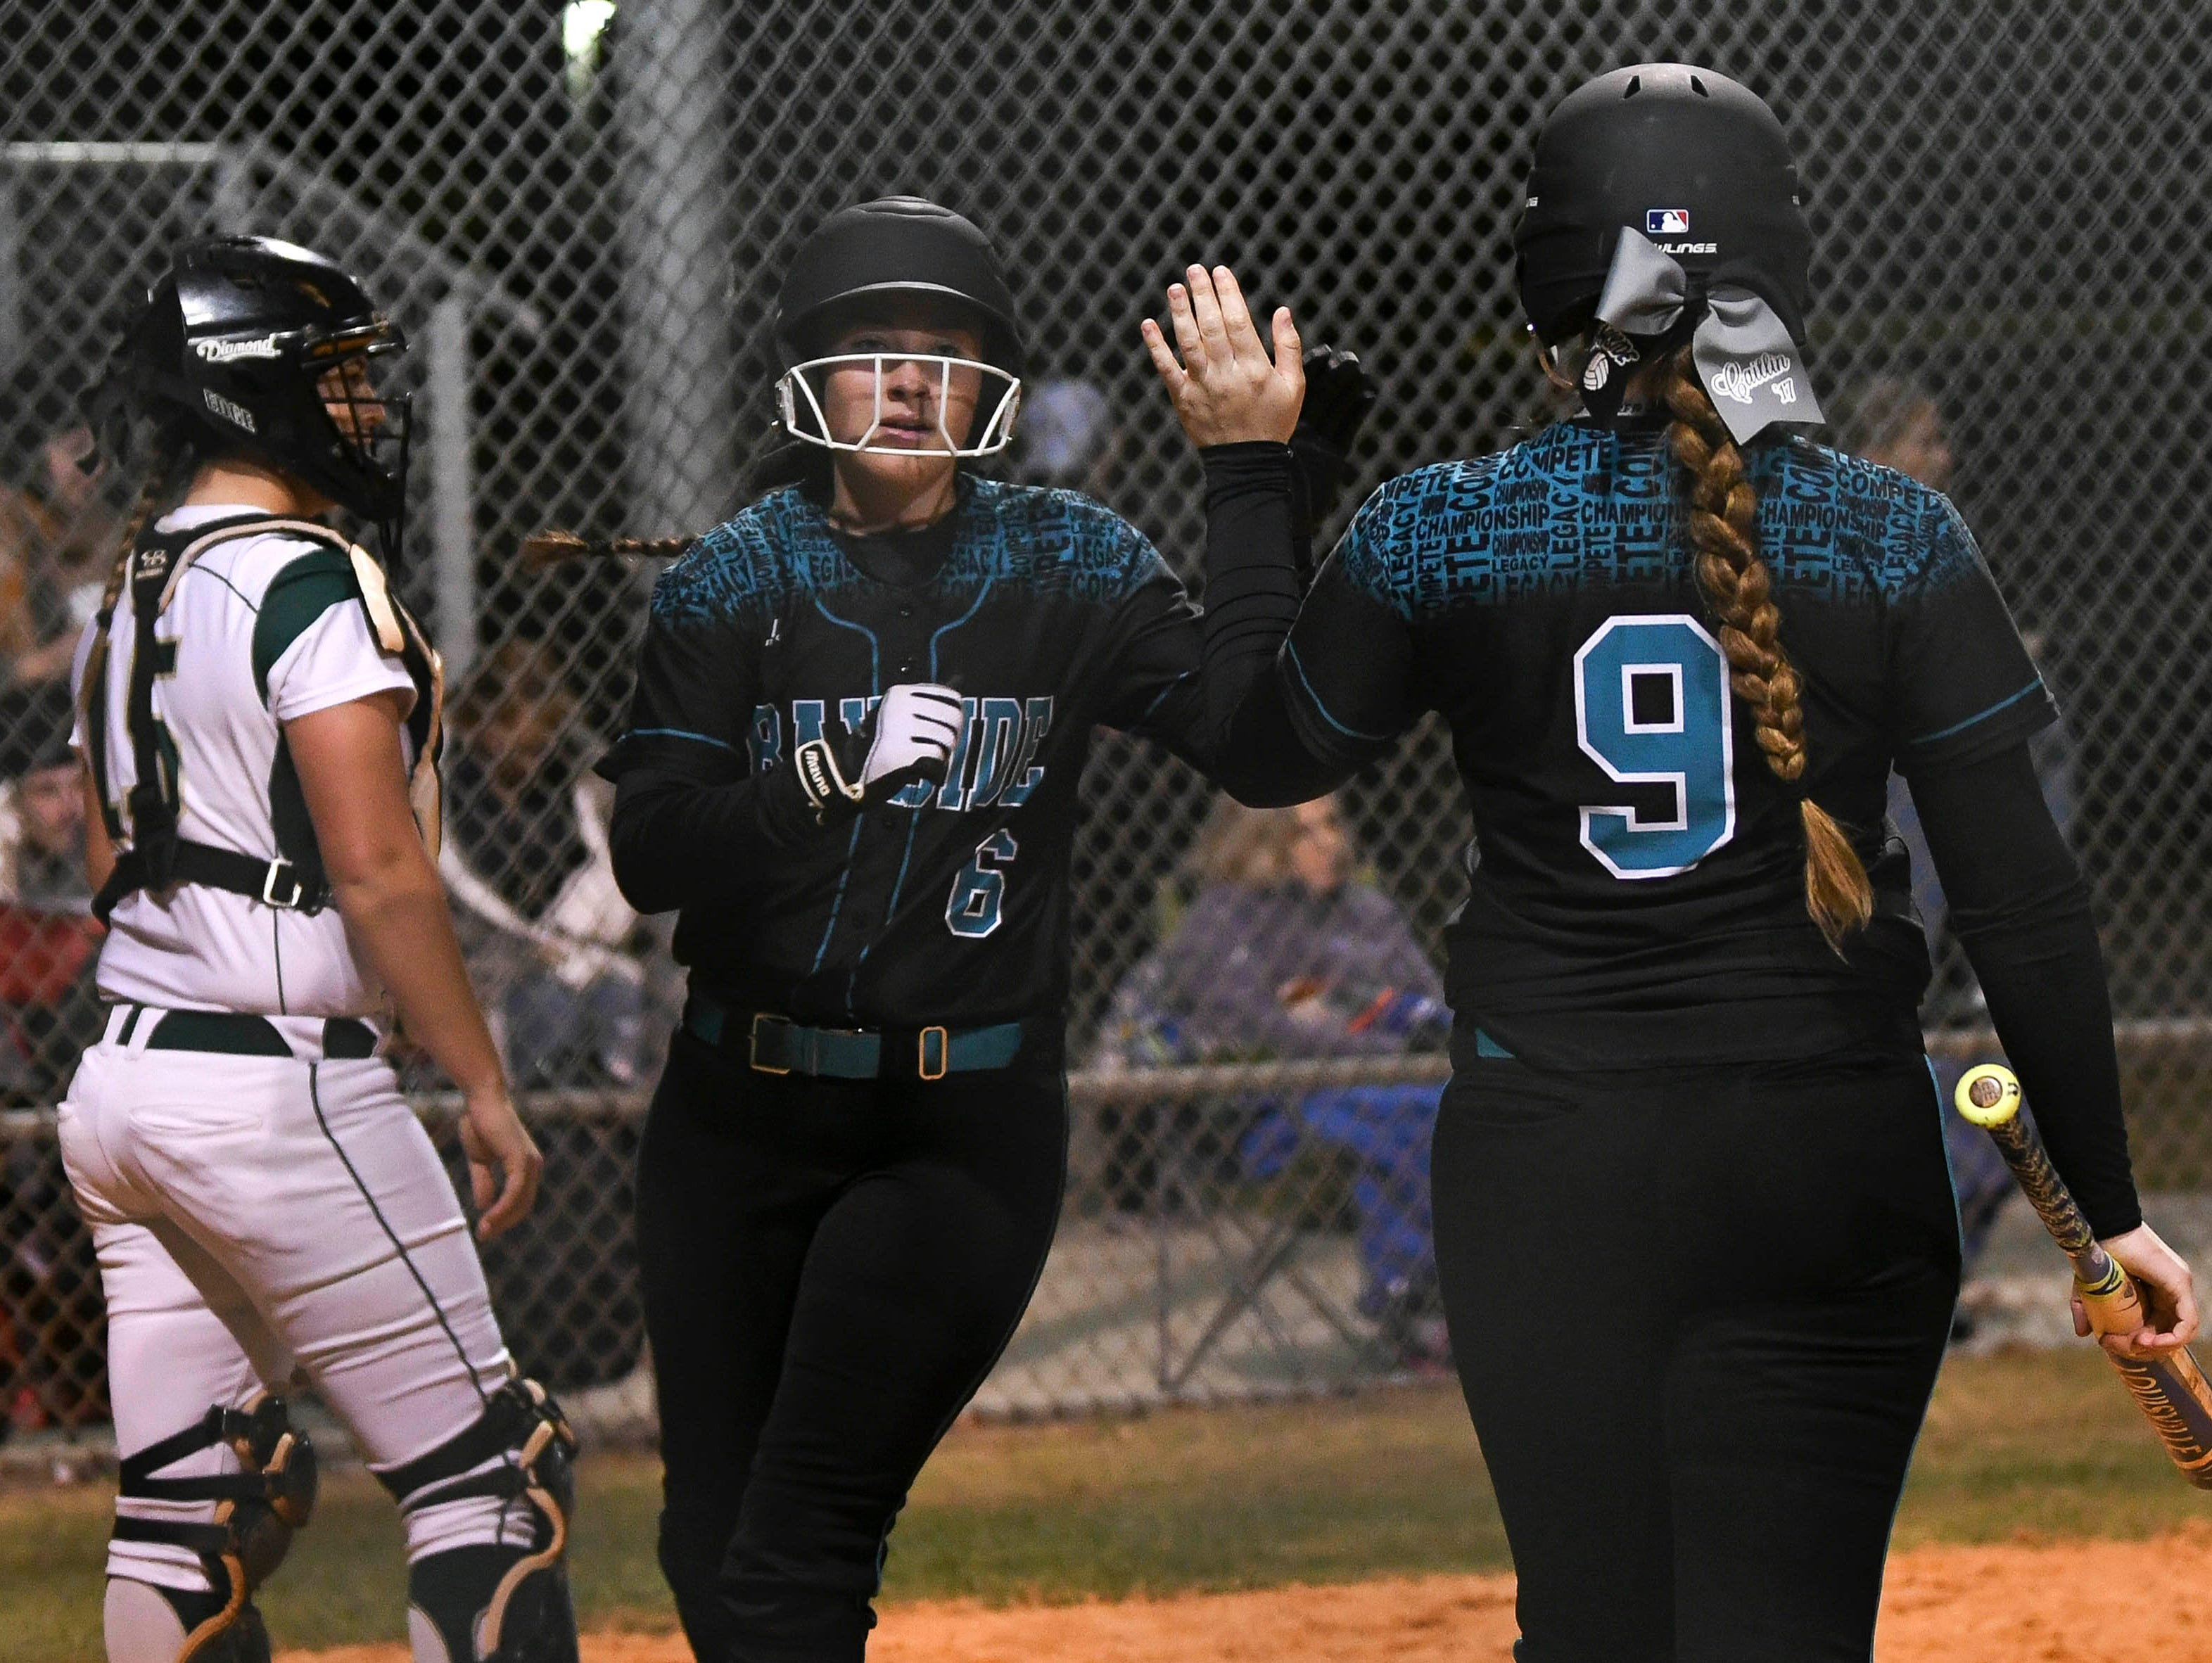 Bayside's Darby Miskow (6) is high fived by teammate Caitlin Meyer after she scores in Tuesday's game against Viera.